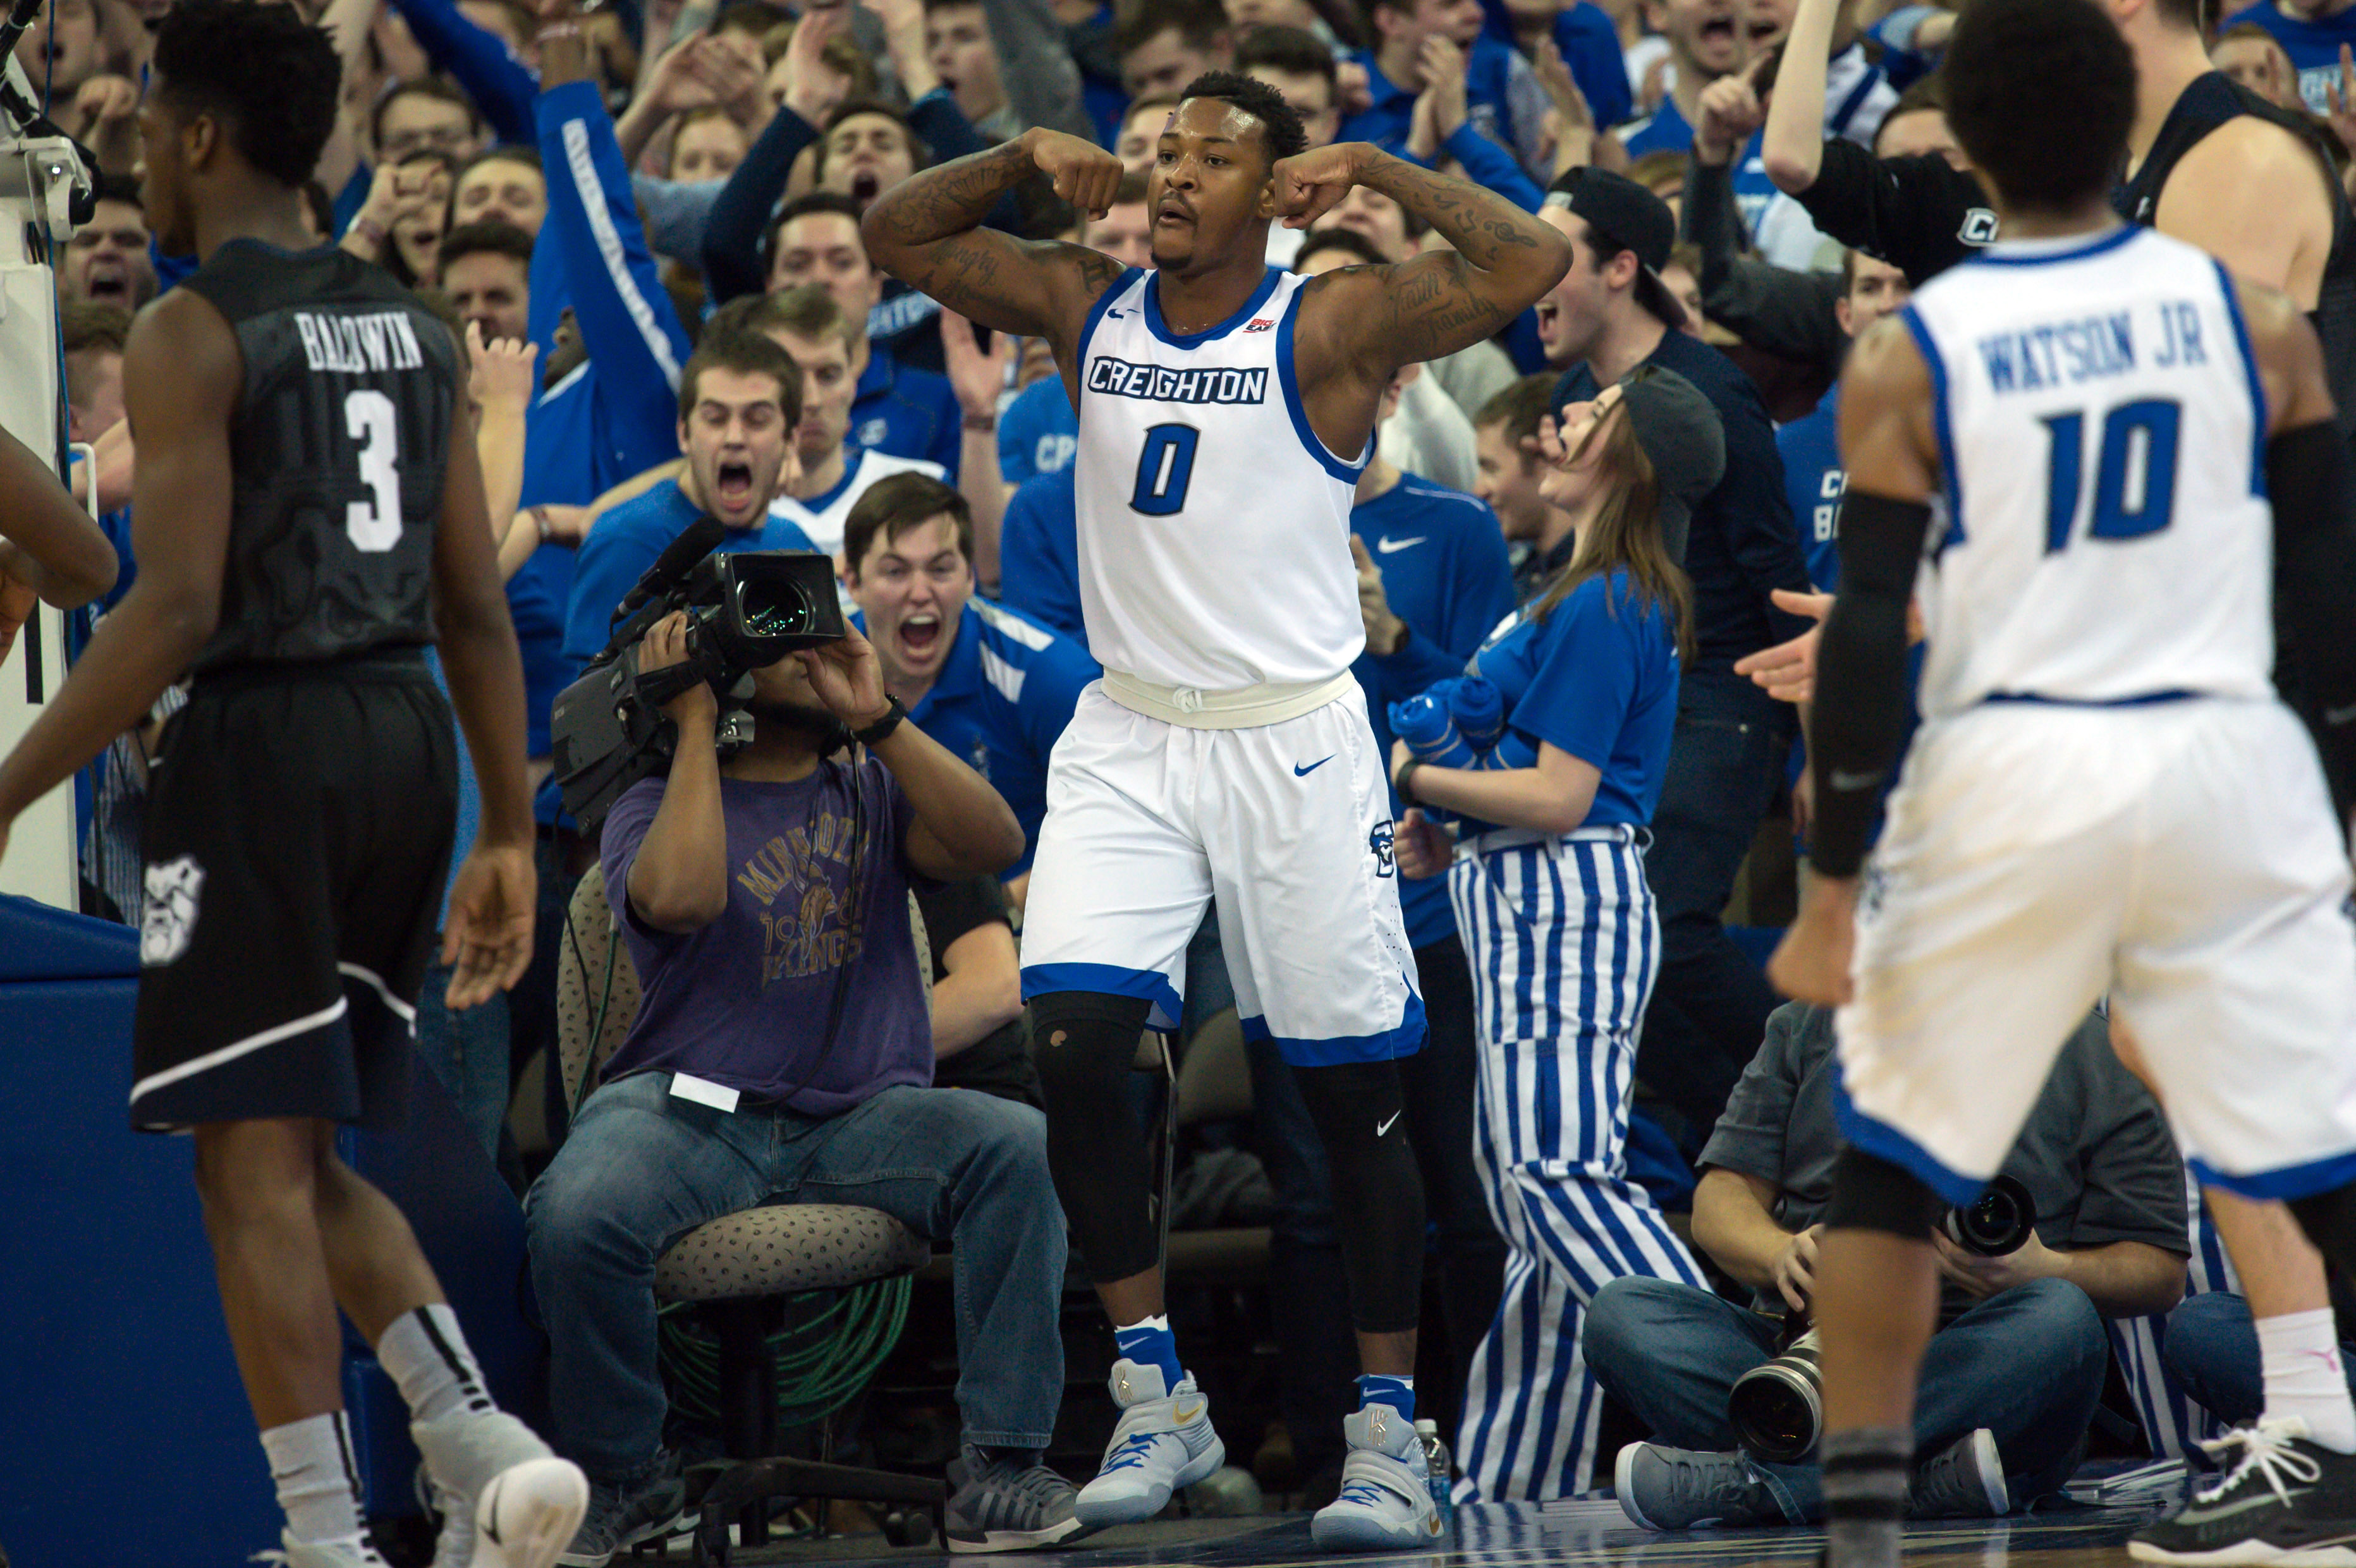 Jan 11, 2017; Omaha, NE, USA;  Creighton Bluejays guard Marcus Foster (0) reacts after scoring against the Butler Bulldogs at CenturyLink Center Omaha. Mandatory Credit: Steven Branscombe-USA TODAY Sports